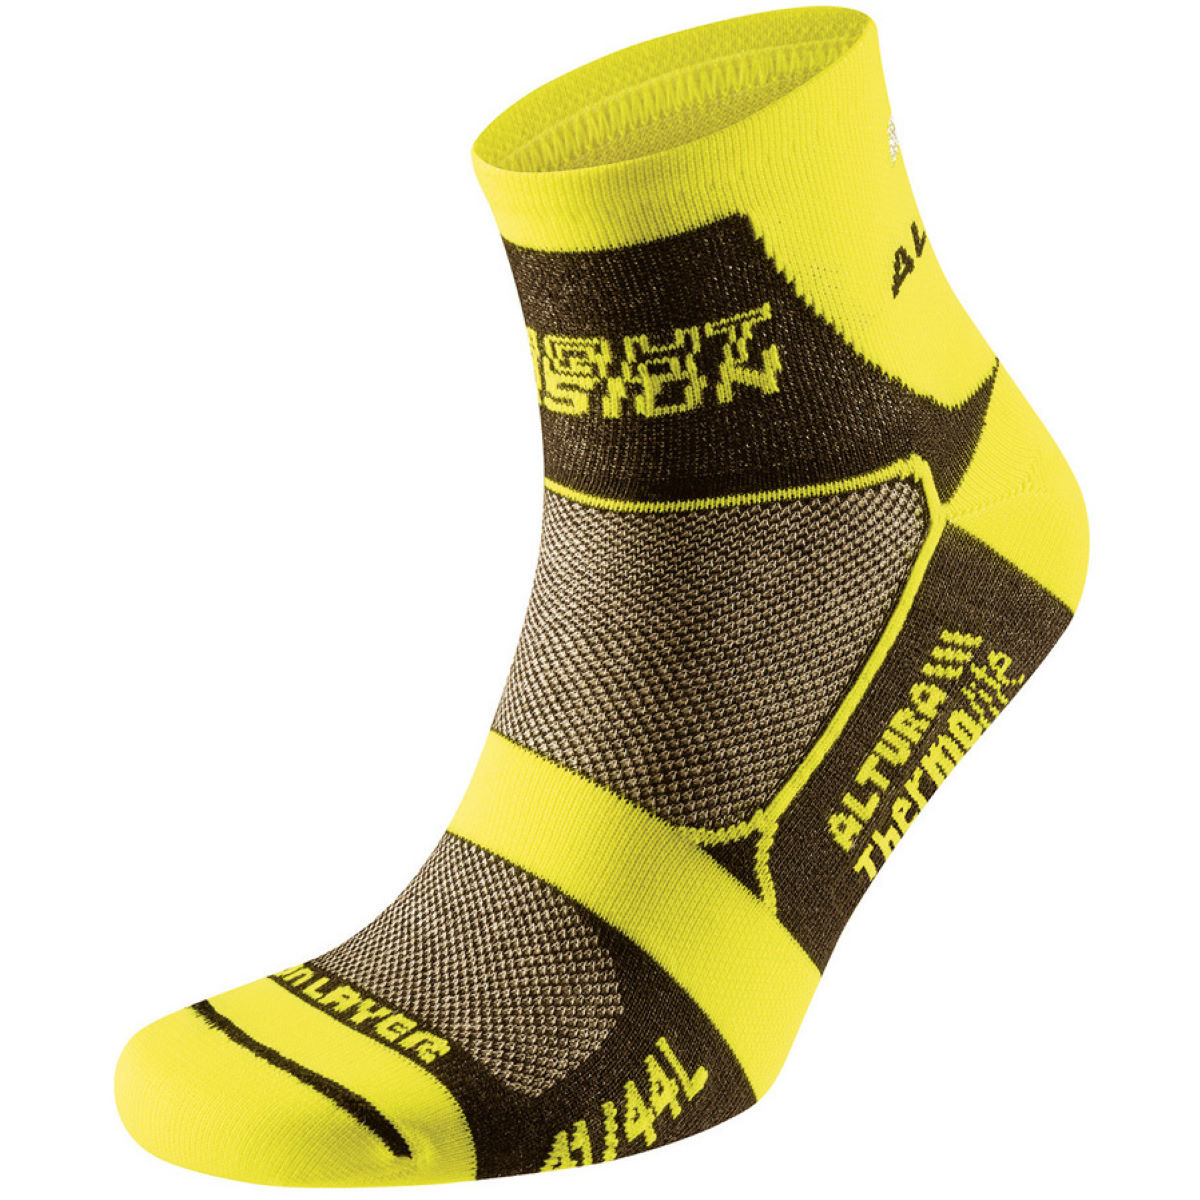 Chaussettes vélo Altura Night Vision Thermolite - S Jaune